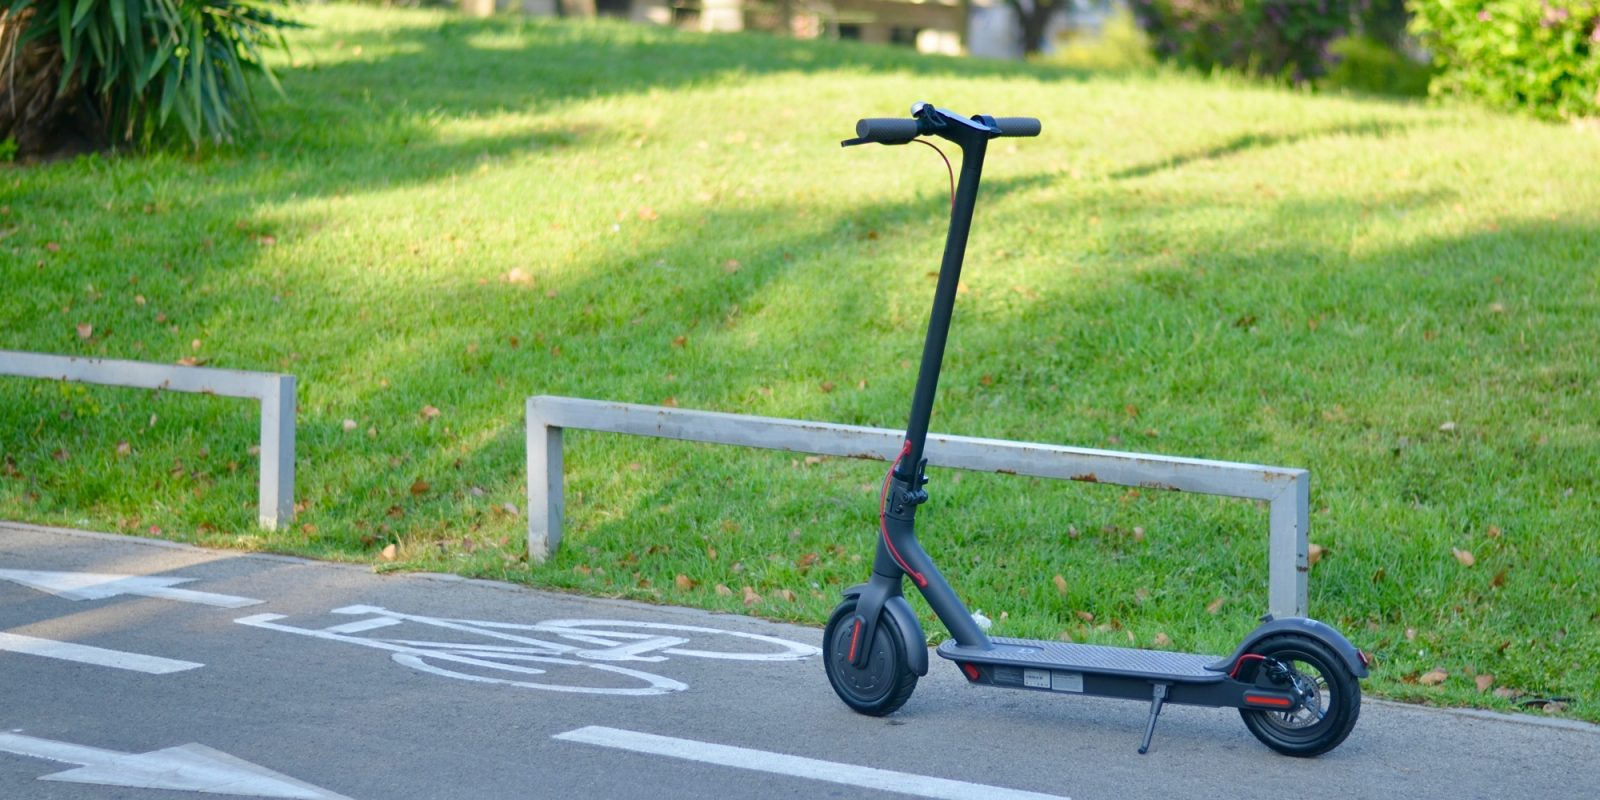 The scooters Xiaomi found a vulnerability that allows anyone to control them remotely